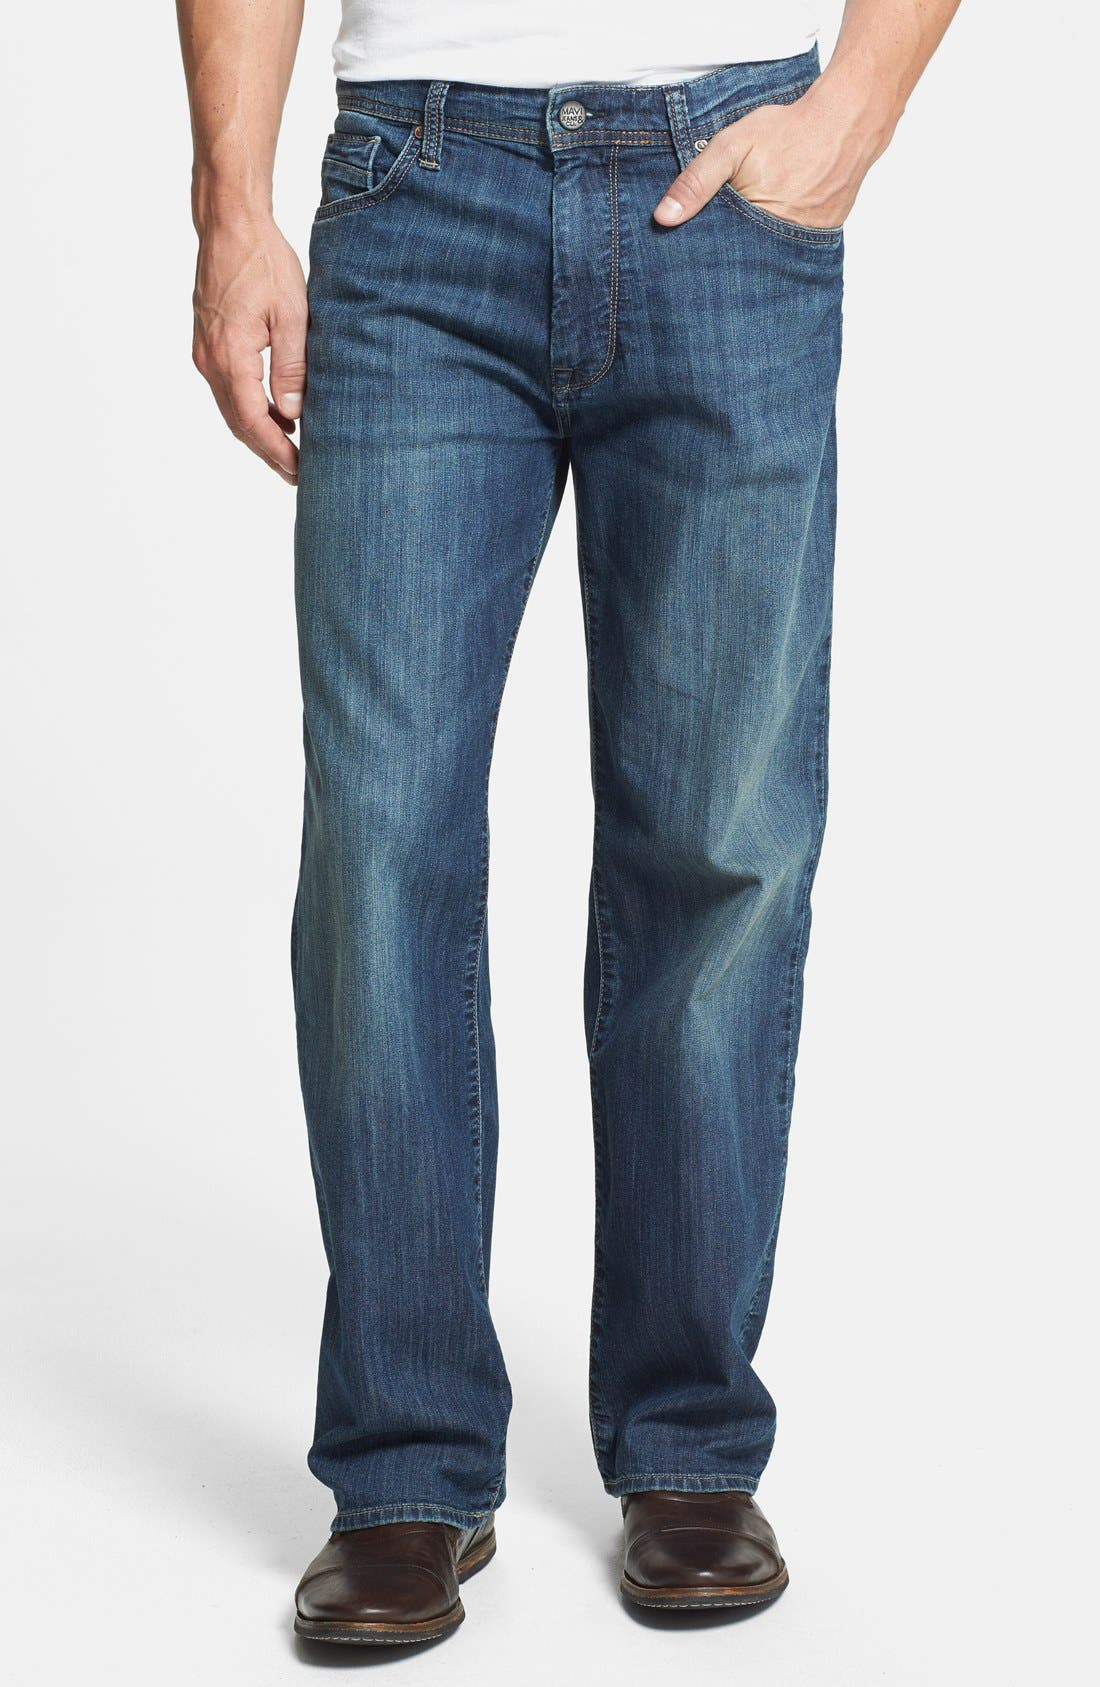 Main Image - Mavi Jeans 'Max' Relaxed Fit Jeans (Mid Railtown) (Online Only)